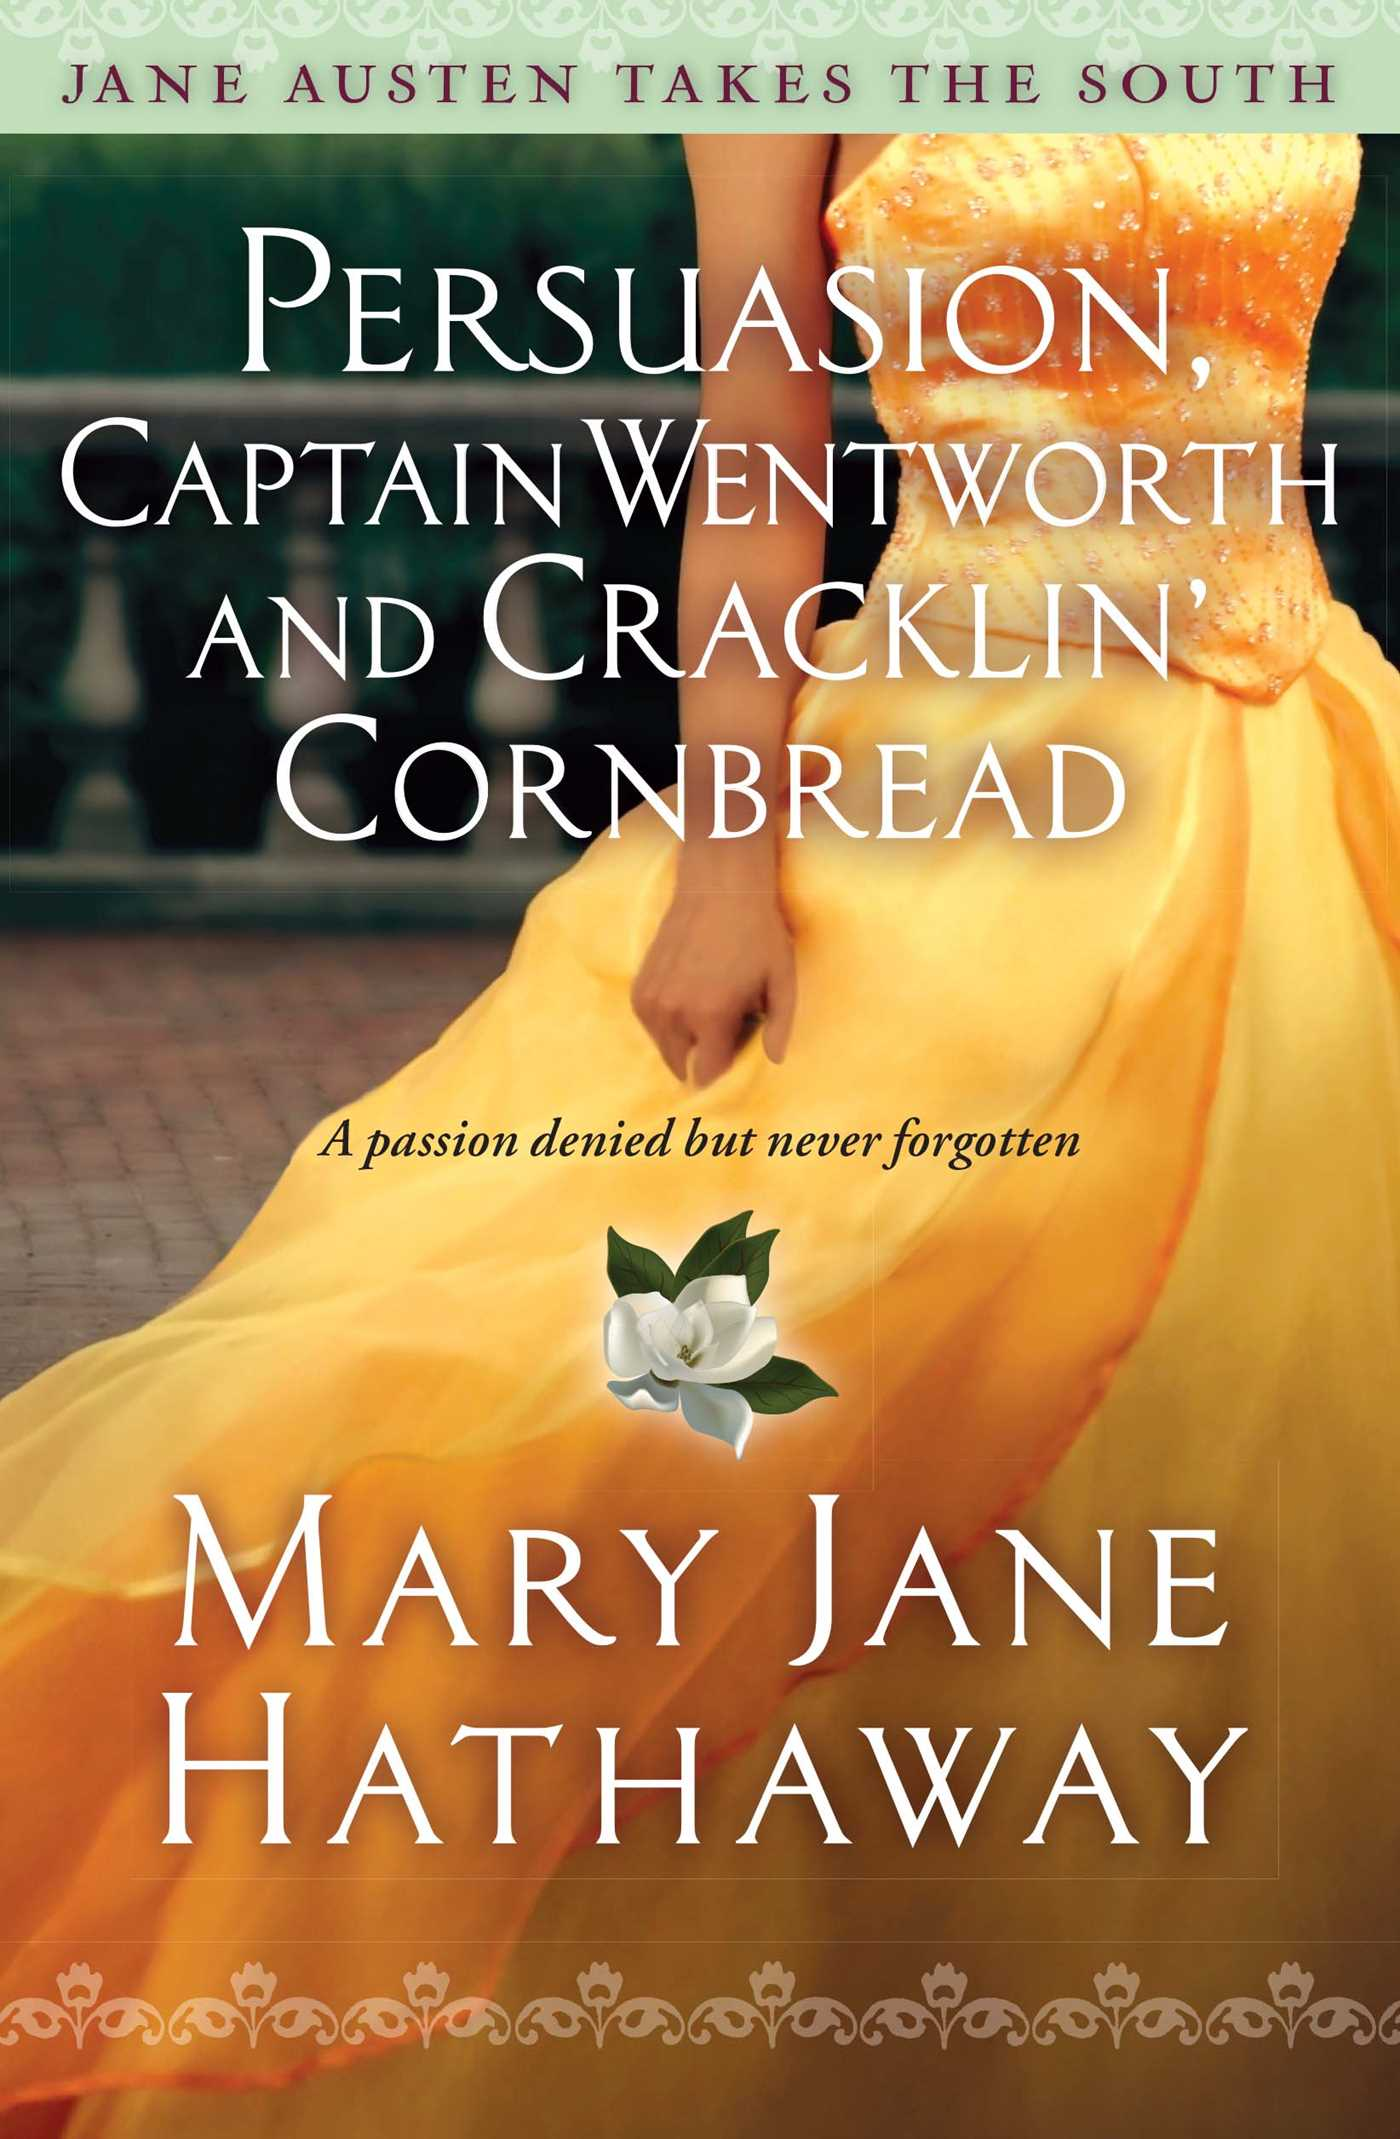 Persuasion-captain-wentworth-and-cracklin-cornbread-9781476777535_hr